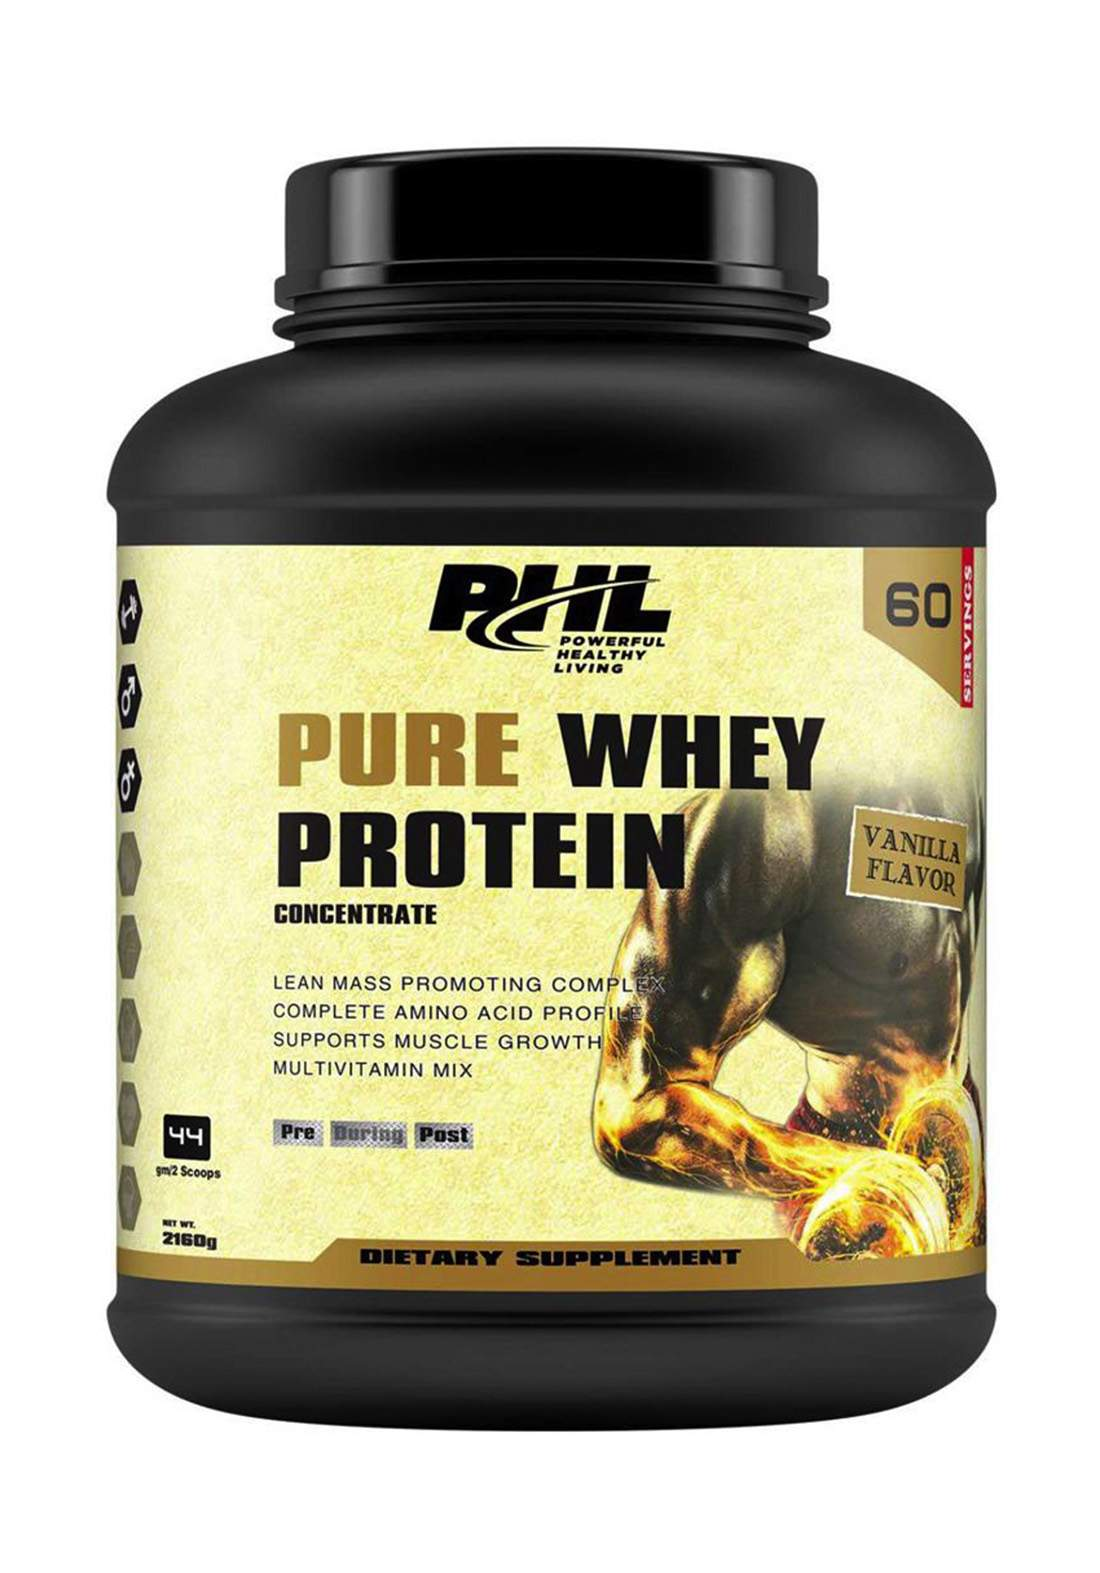 Phl Pure Whey Protein Vanilla  60 Servings 2160 g بروتين مكمل غذائي